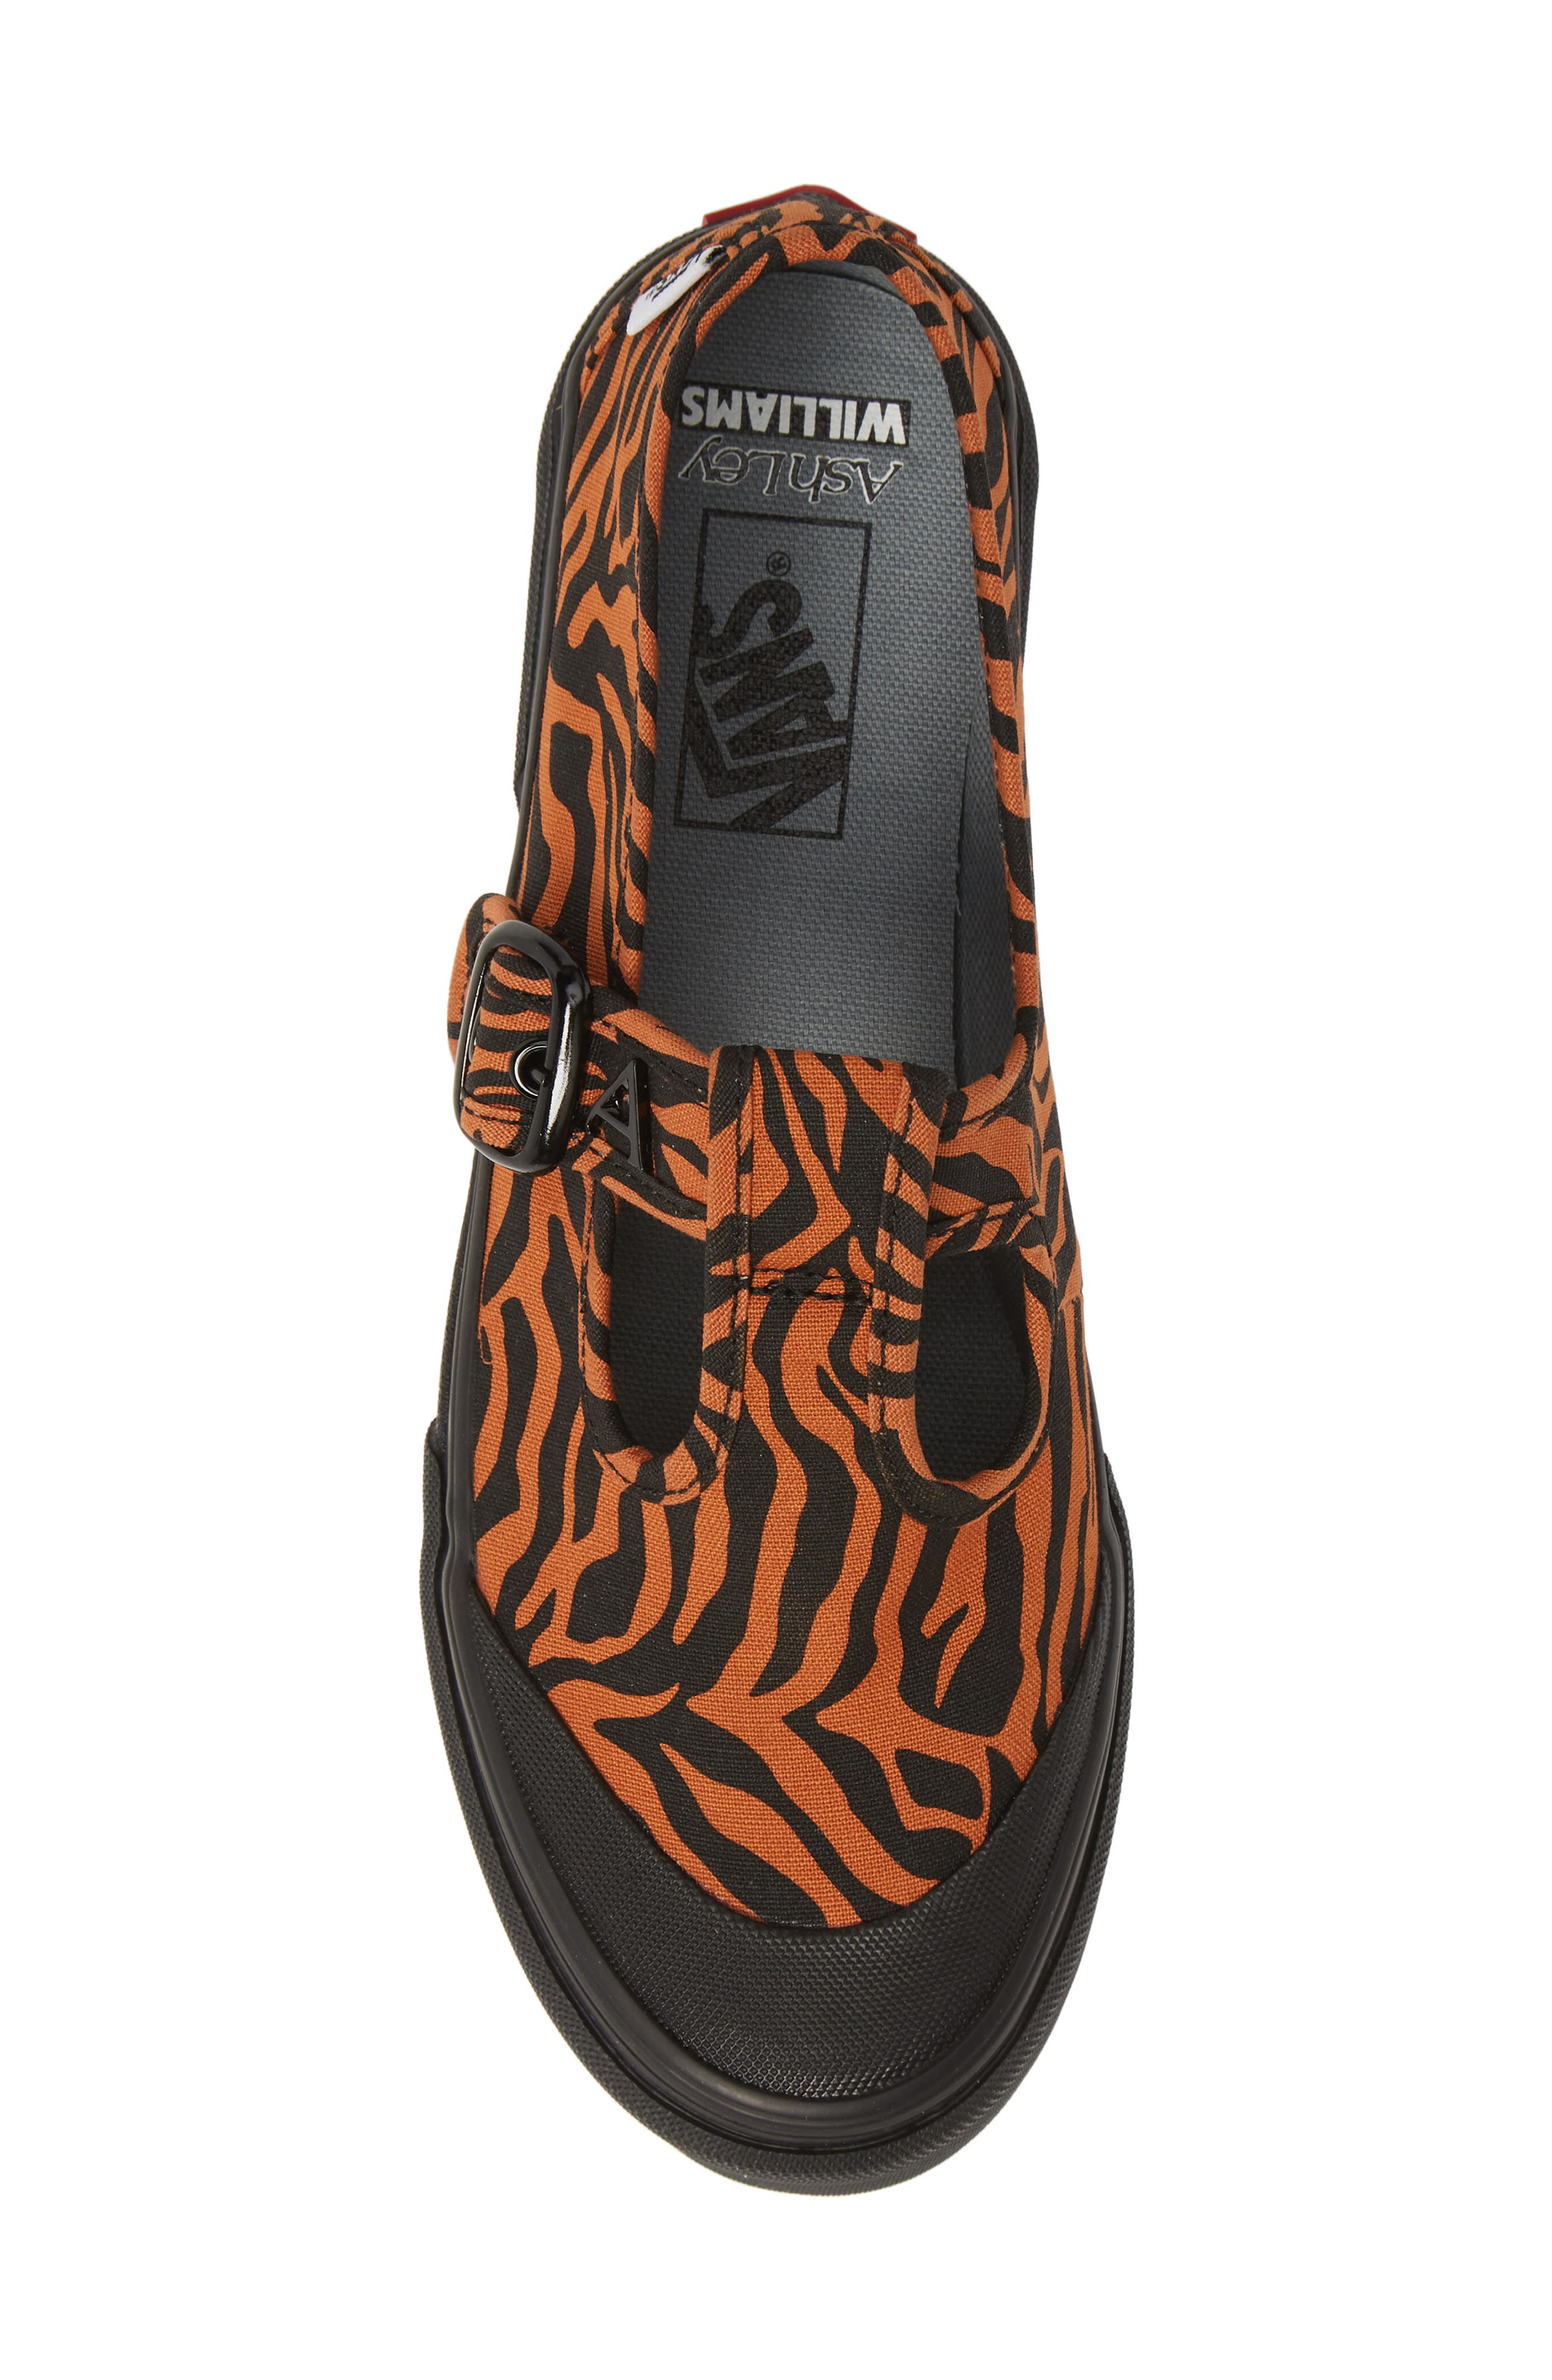 VANS, x Ashley Williams Style 38 Tiger Sneaker, Alternate thumbnail 5, color, TIGER/ BLACK